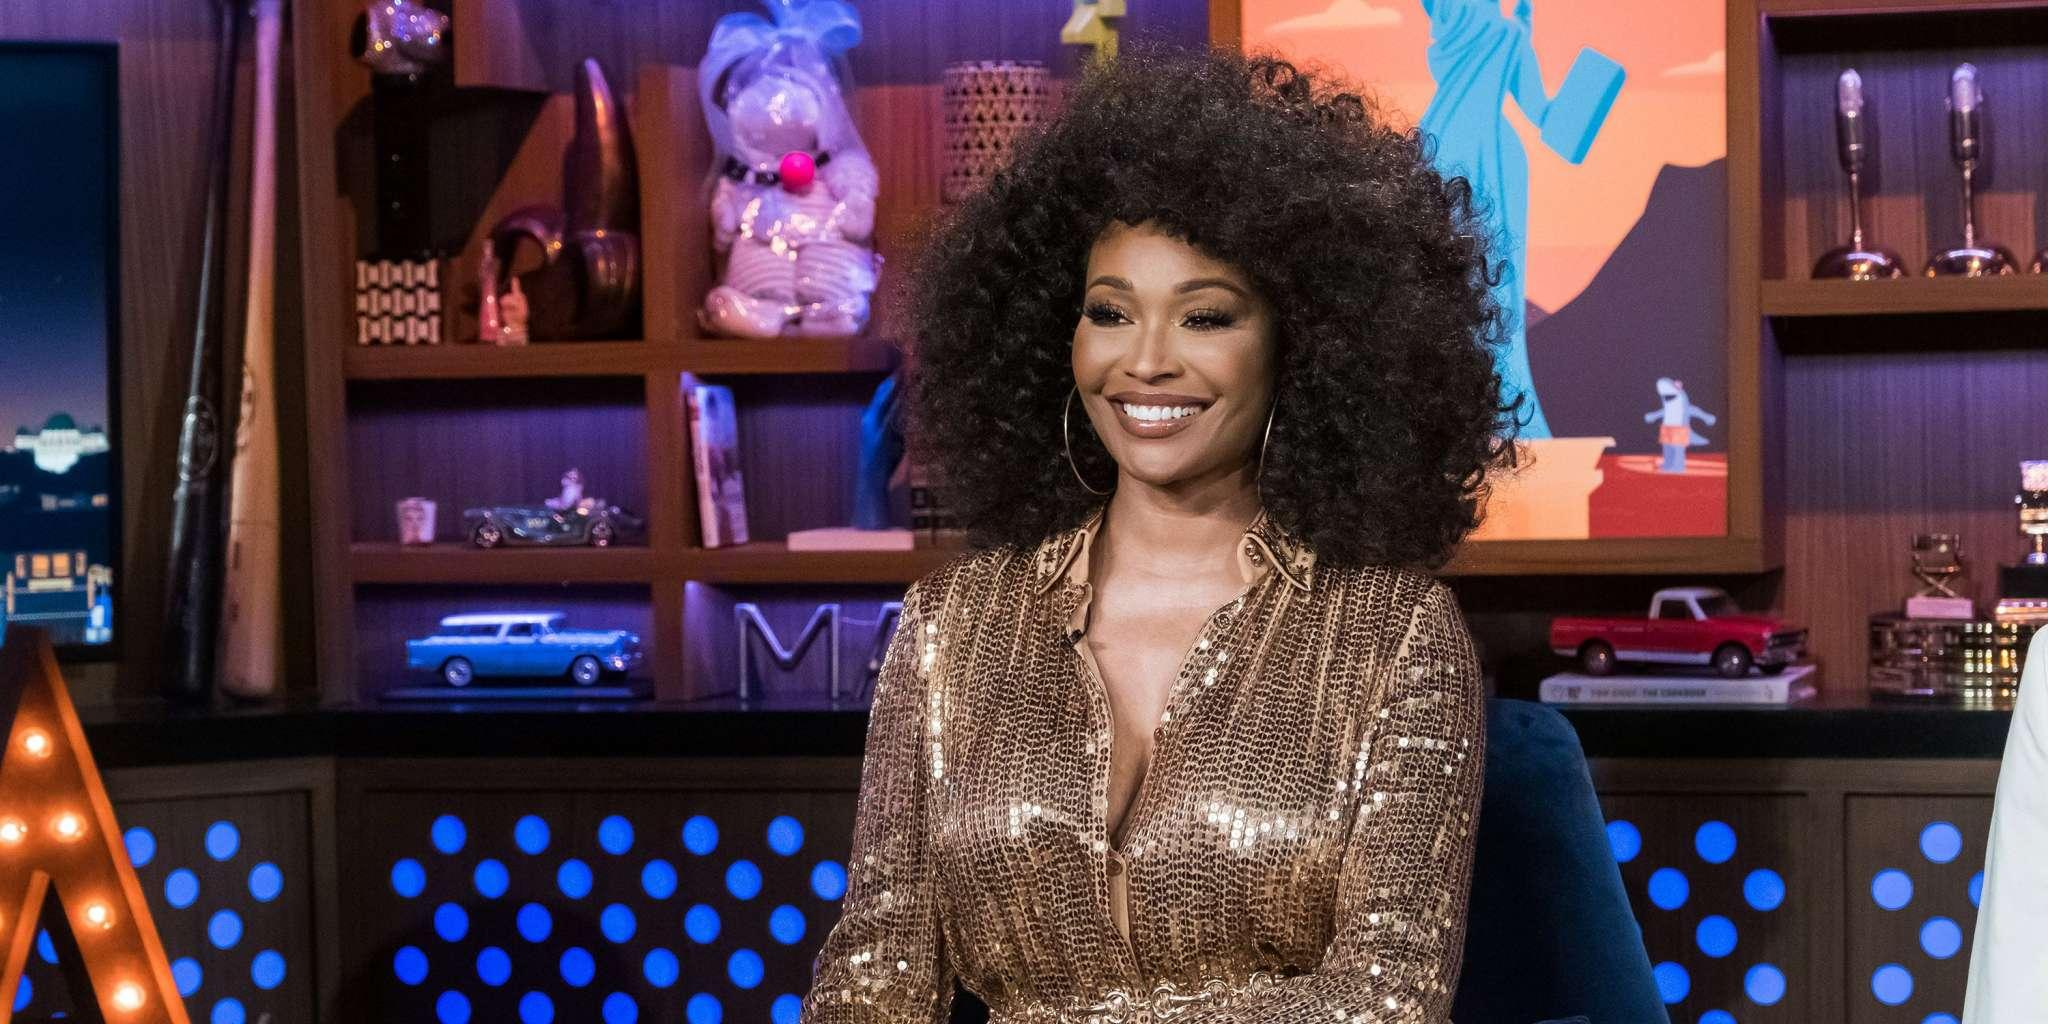 Cynthia Bailey Shares Precious Advice With Fans - Check Out What She Said